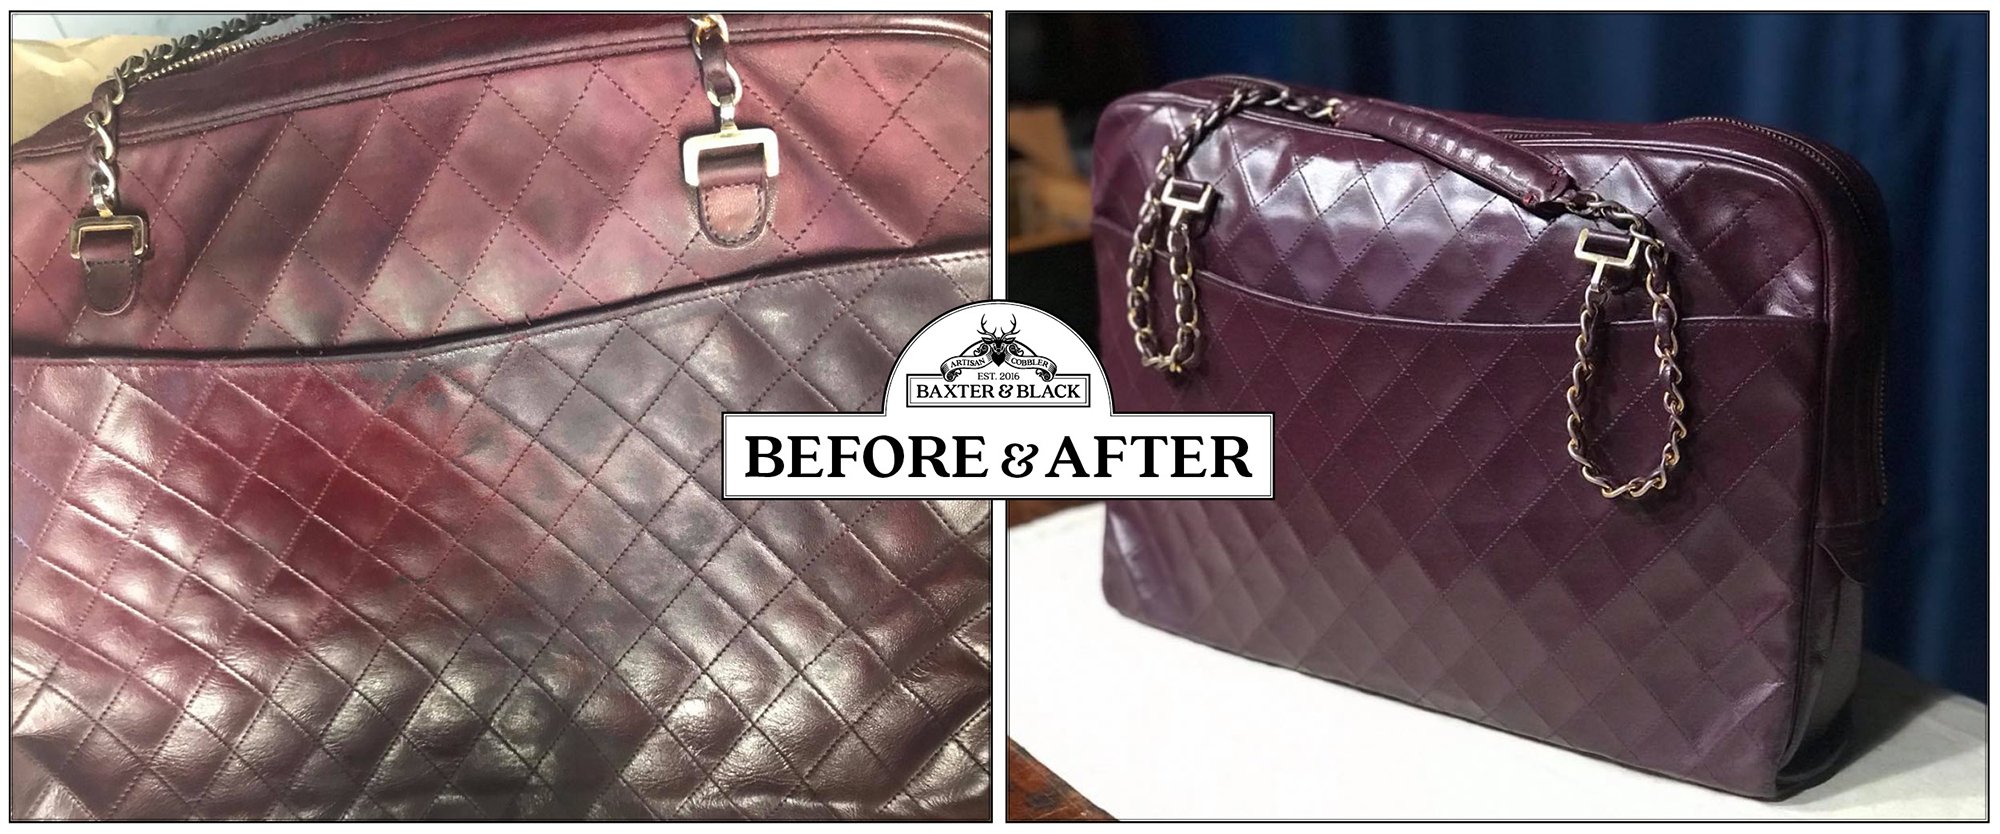 Chanel handbag recolour and restoration